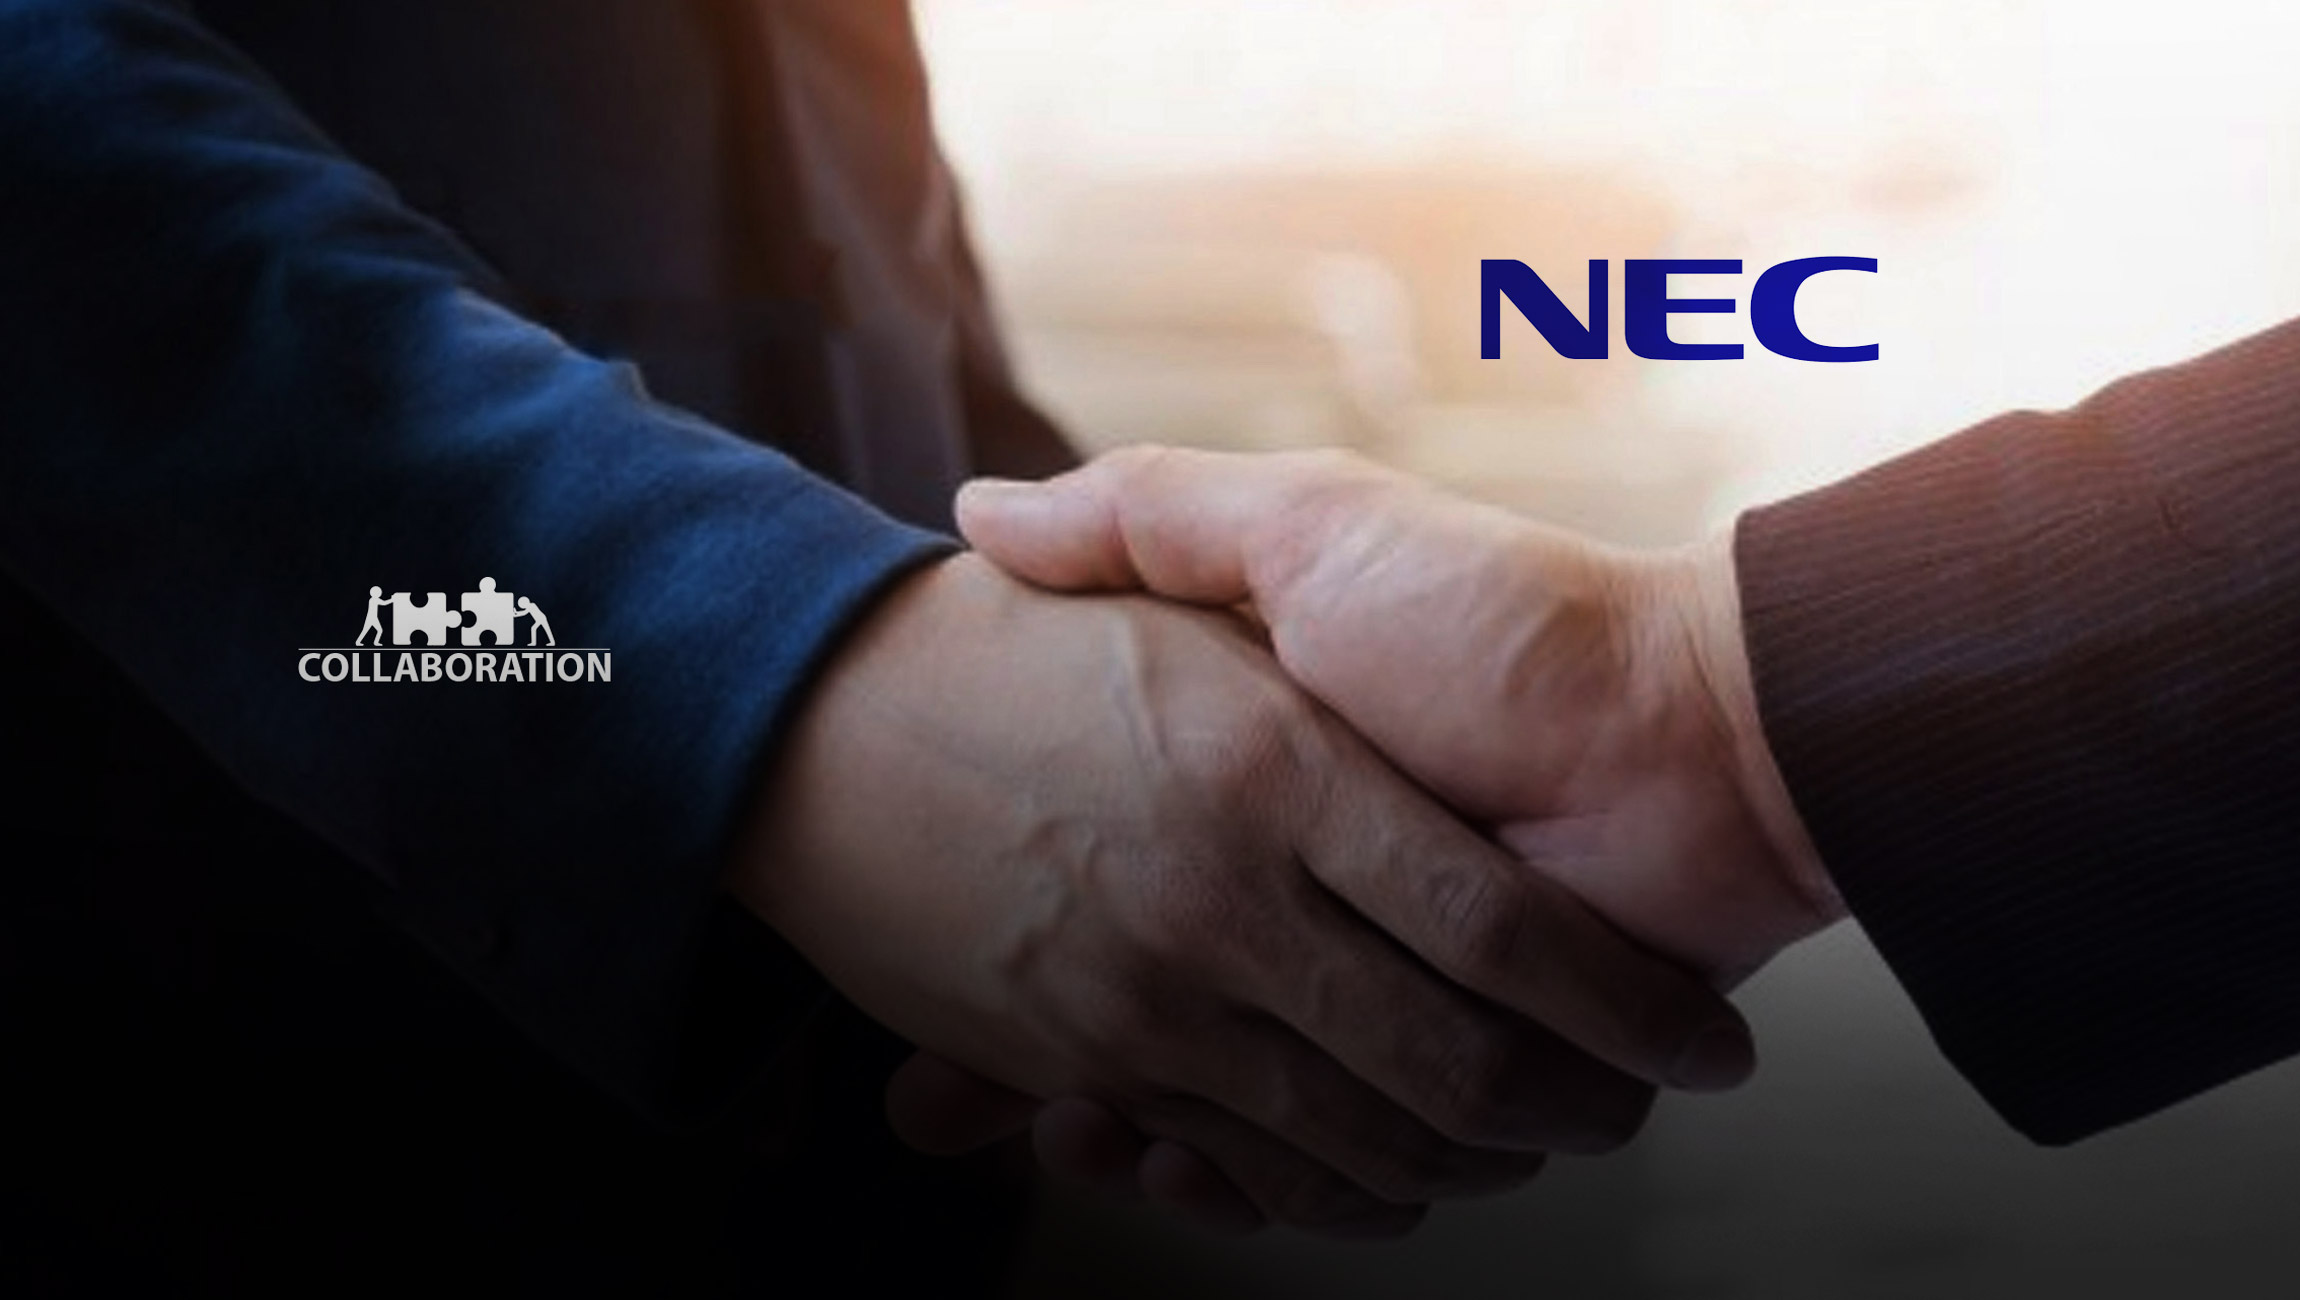 NEC and Realeyes Jointly Develop Emotion Analysis Service in Support of Video Communications